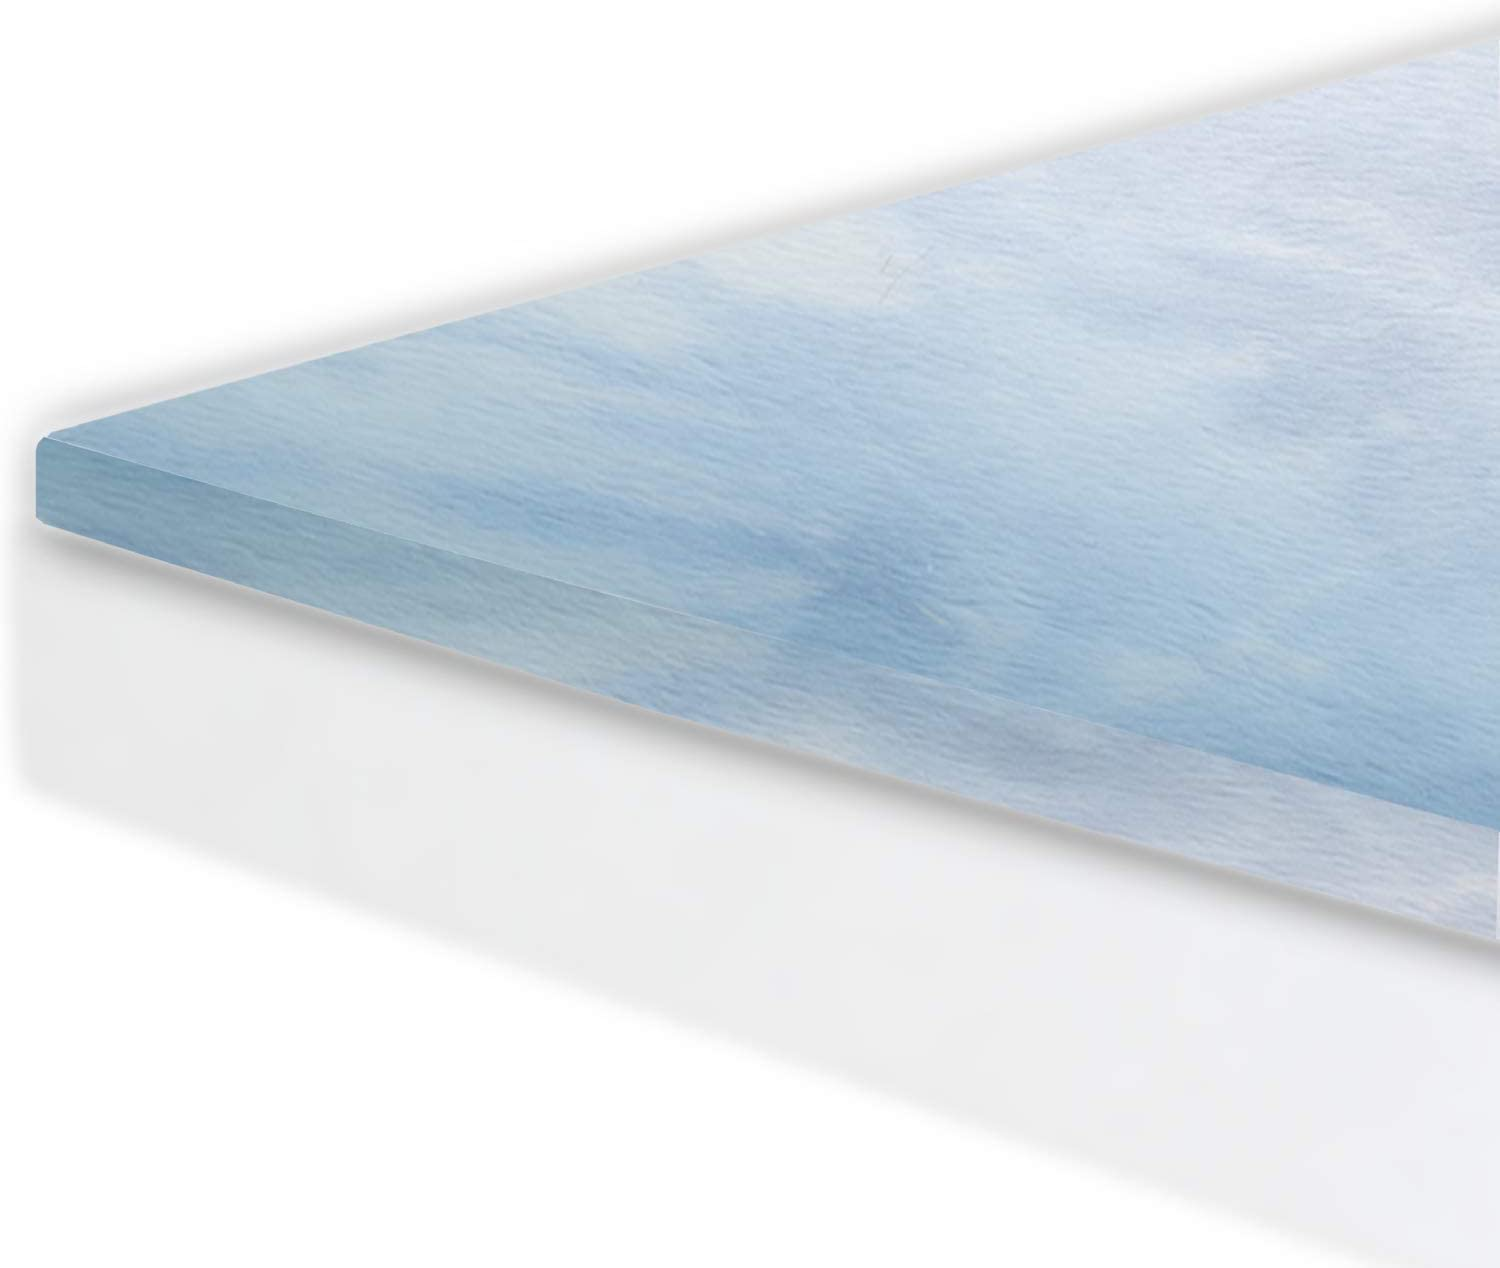 Gel Memory Foam Mattress Topper California King Size Pad - Made in The USA - 2 Inch Cal King Mattress Topper for Extra Padding - Medium Soft Gel Infused Toppers - 3 Year Warranty